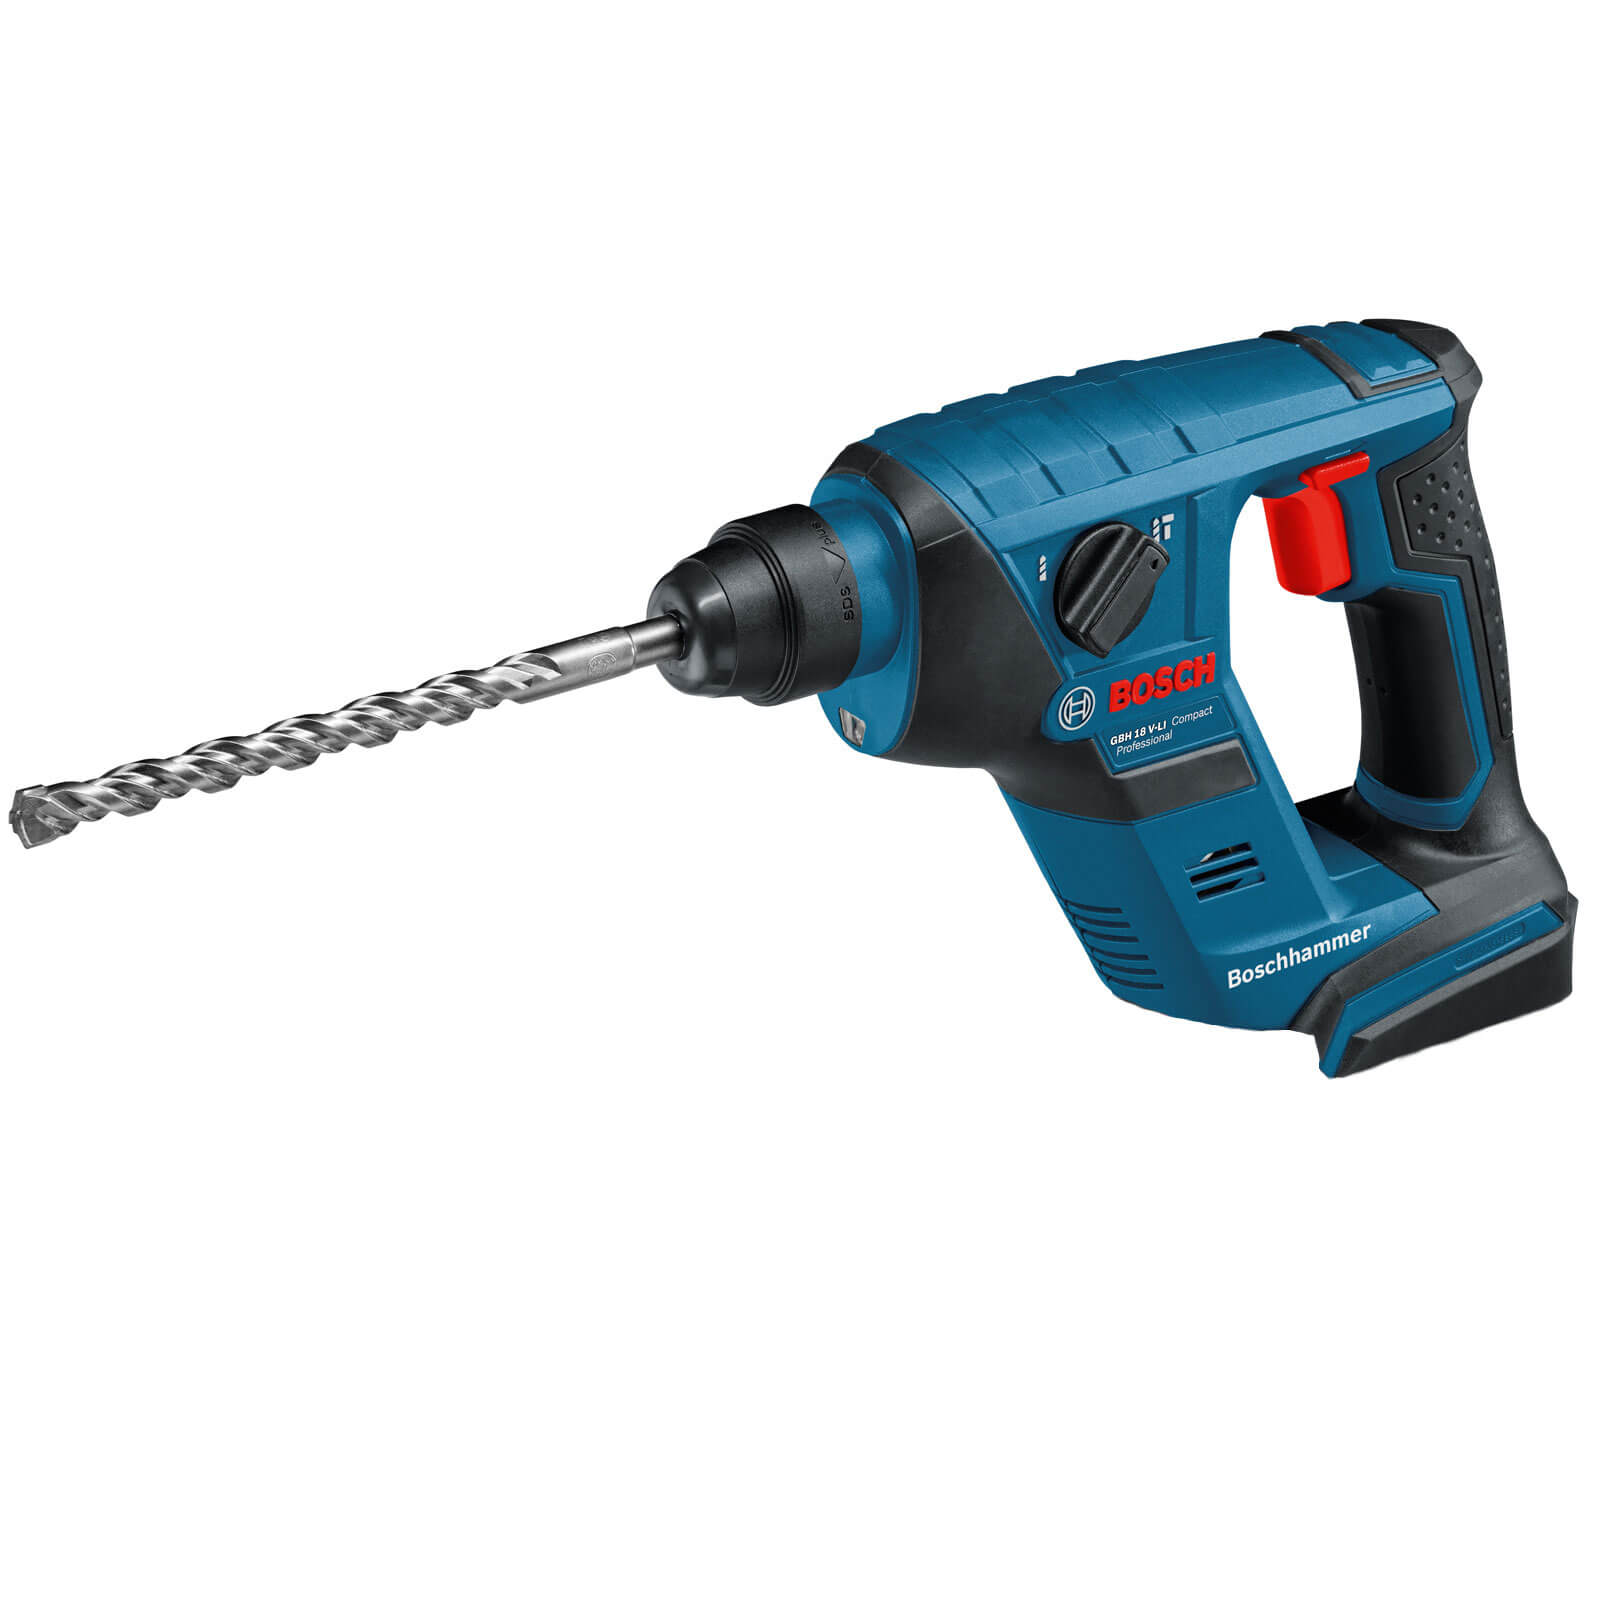 Bosch GBH 18 VLI CP 18v Cordless SDS Drill No Batteries No Charger No Case